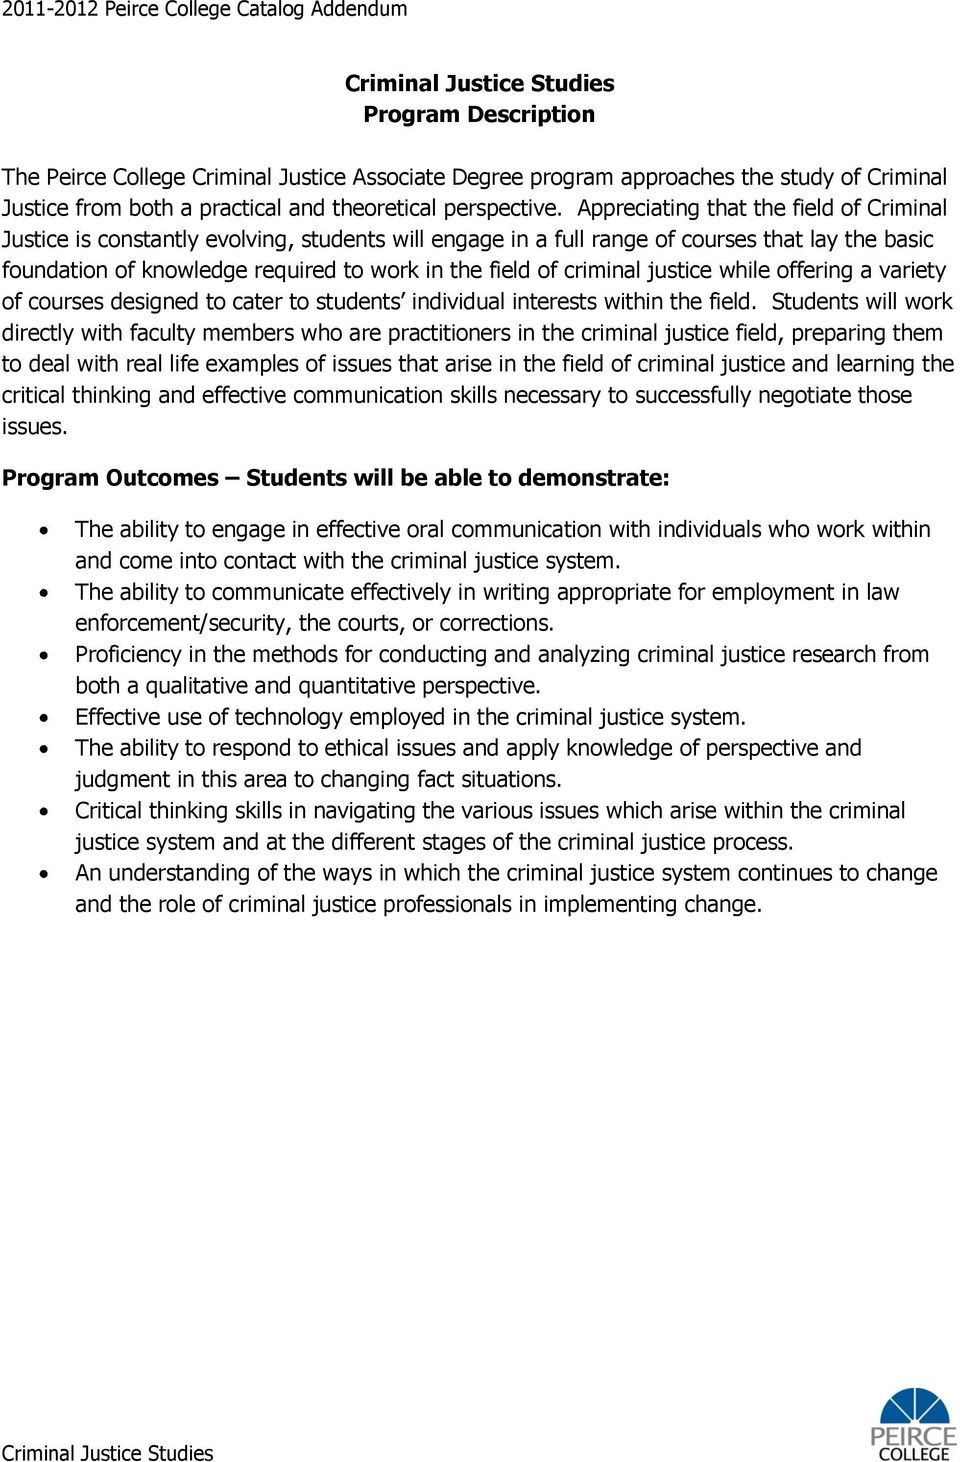 criminal justice while offering a variety of courses designed to cater to students individual interests within the field.